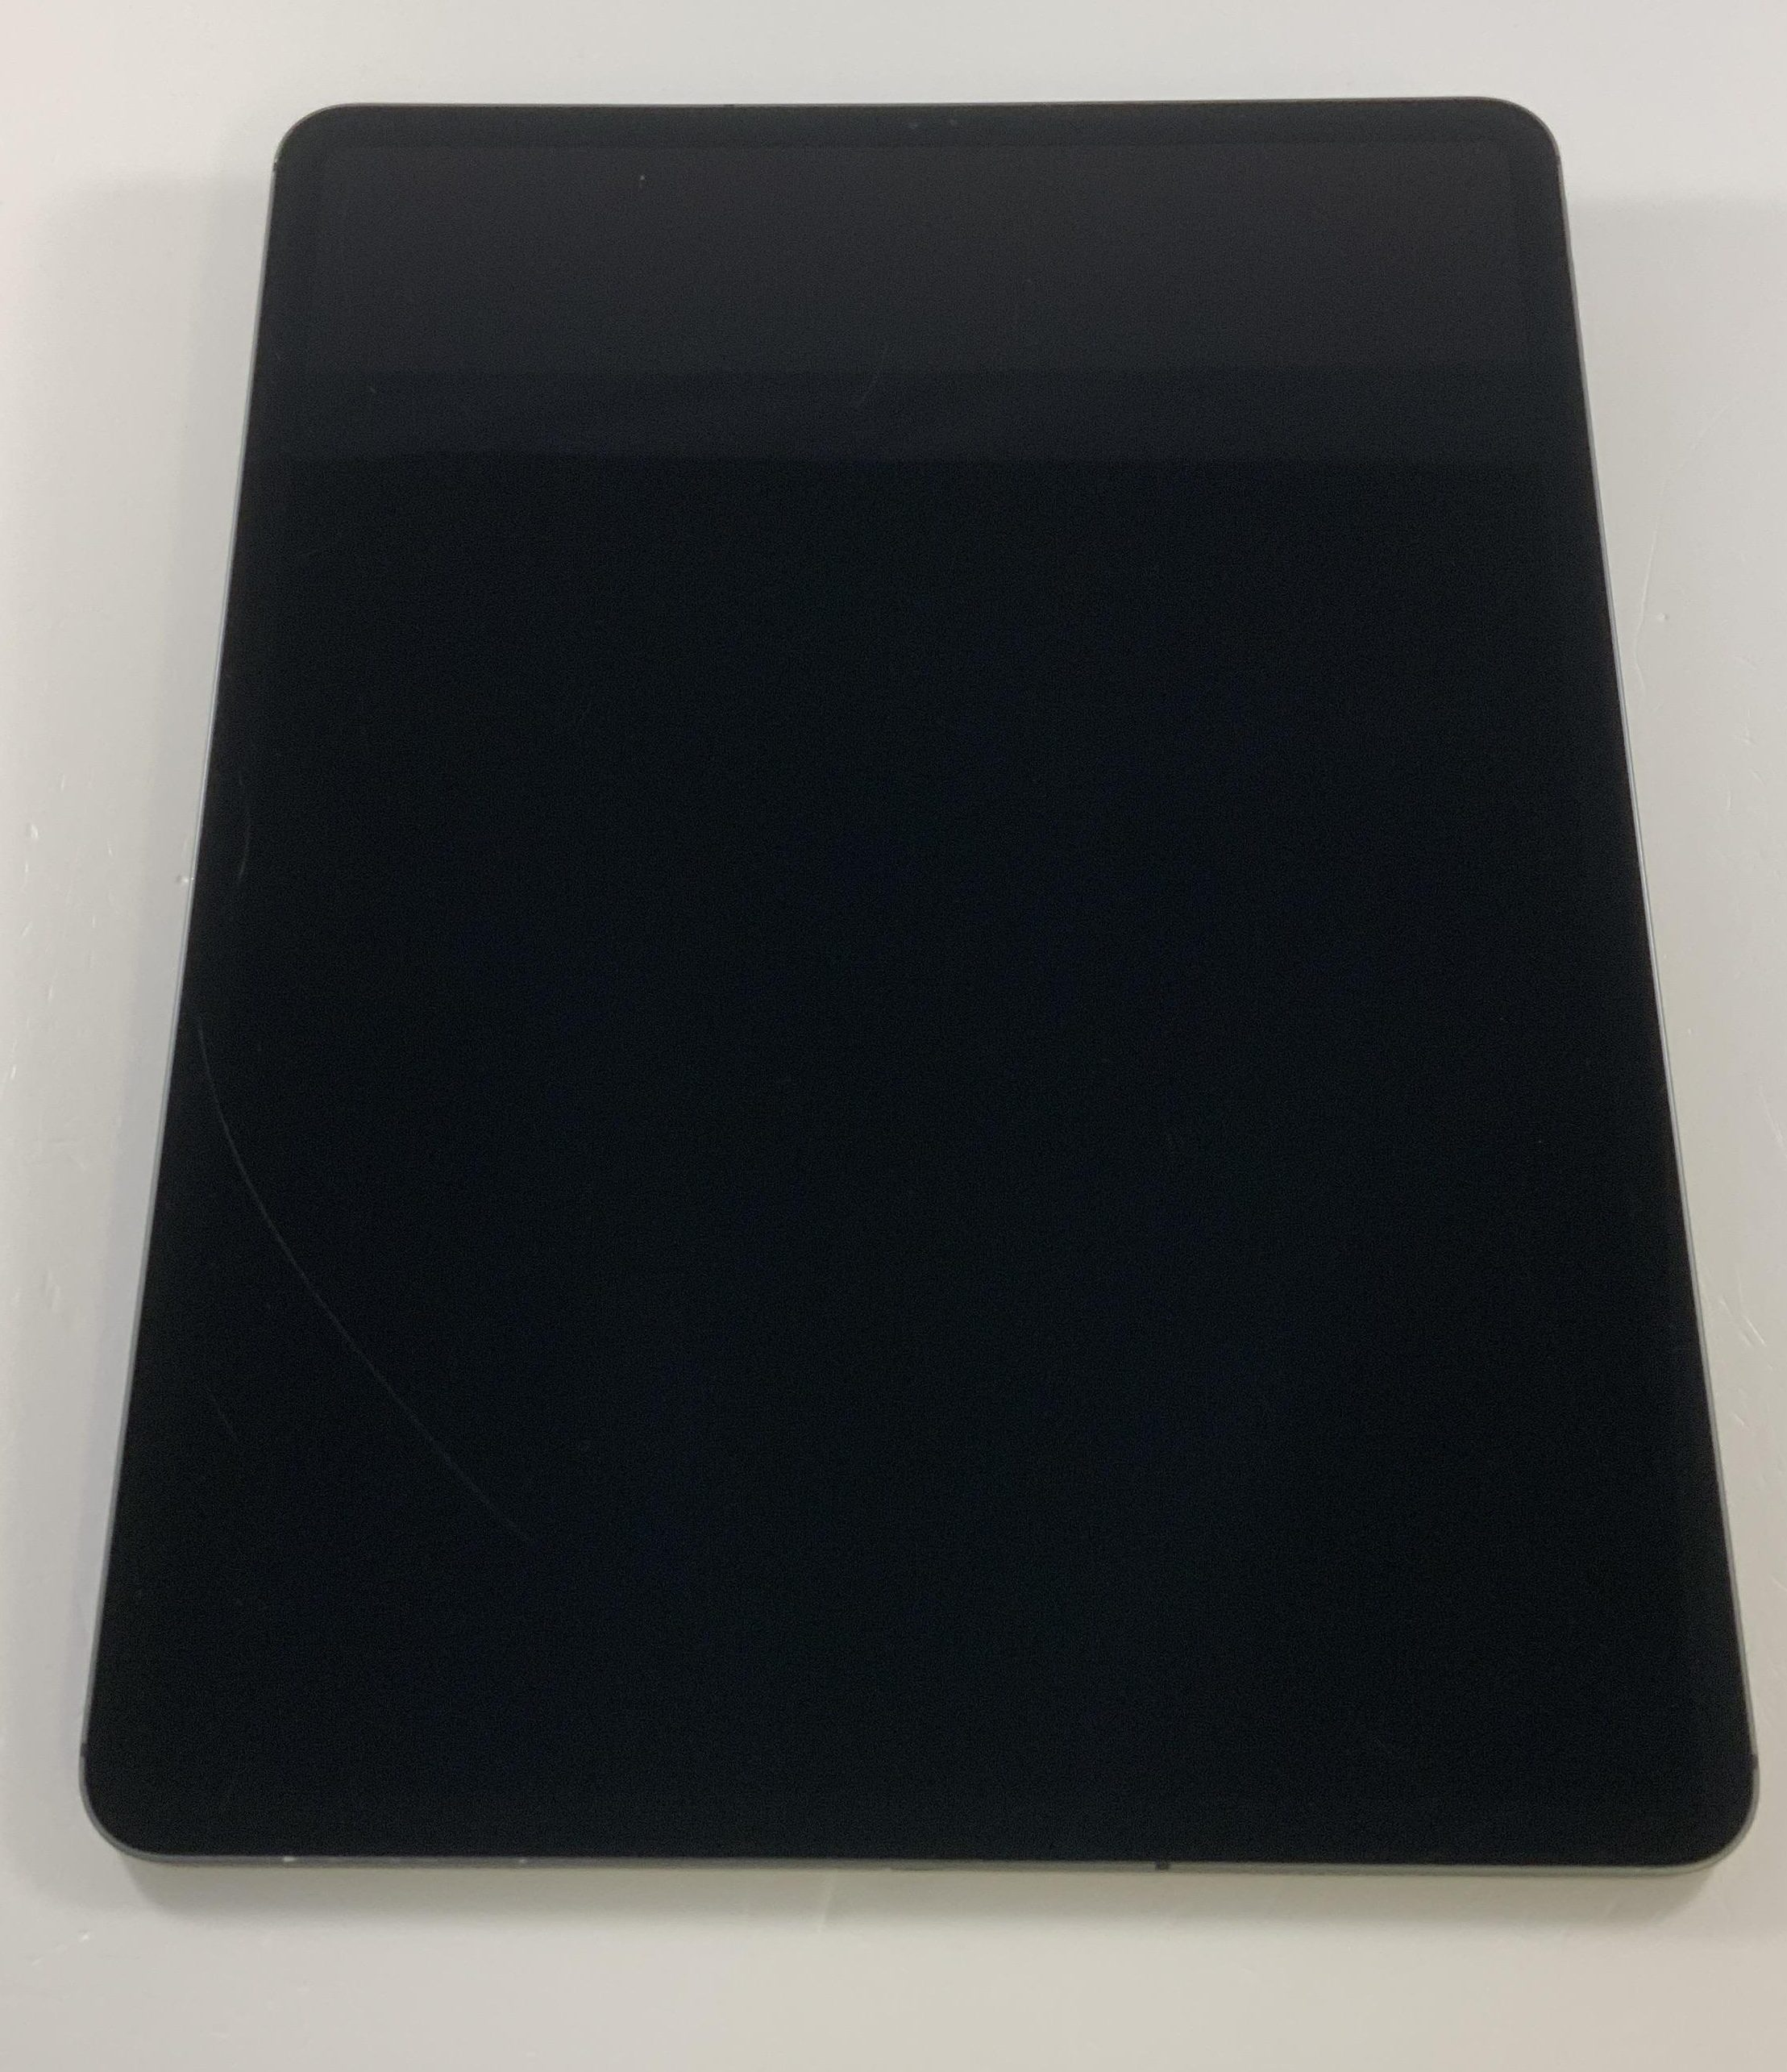 "iPad Pro 12.9"" Wi-Fi + Cellular (4th Gen) 256GB, 256GB, Space Gray, Bild 1"